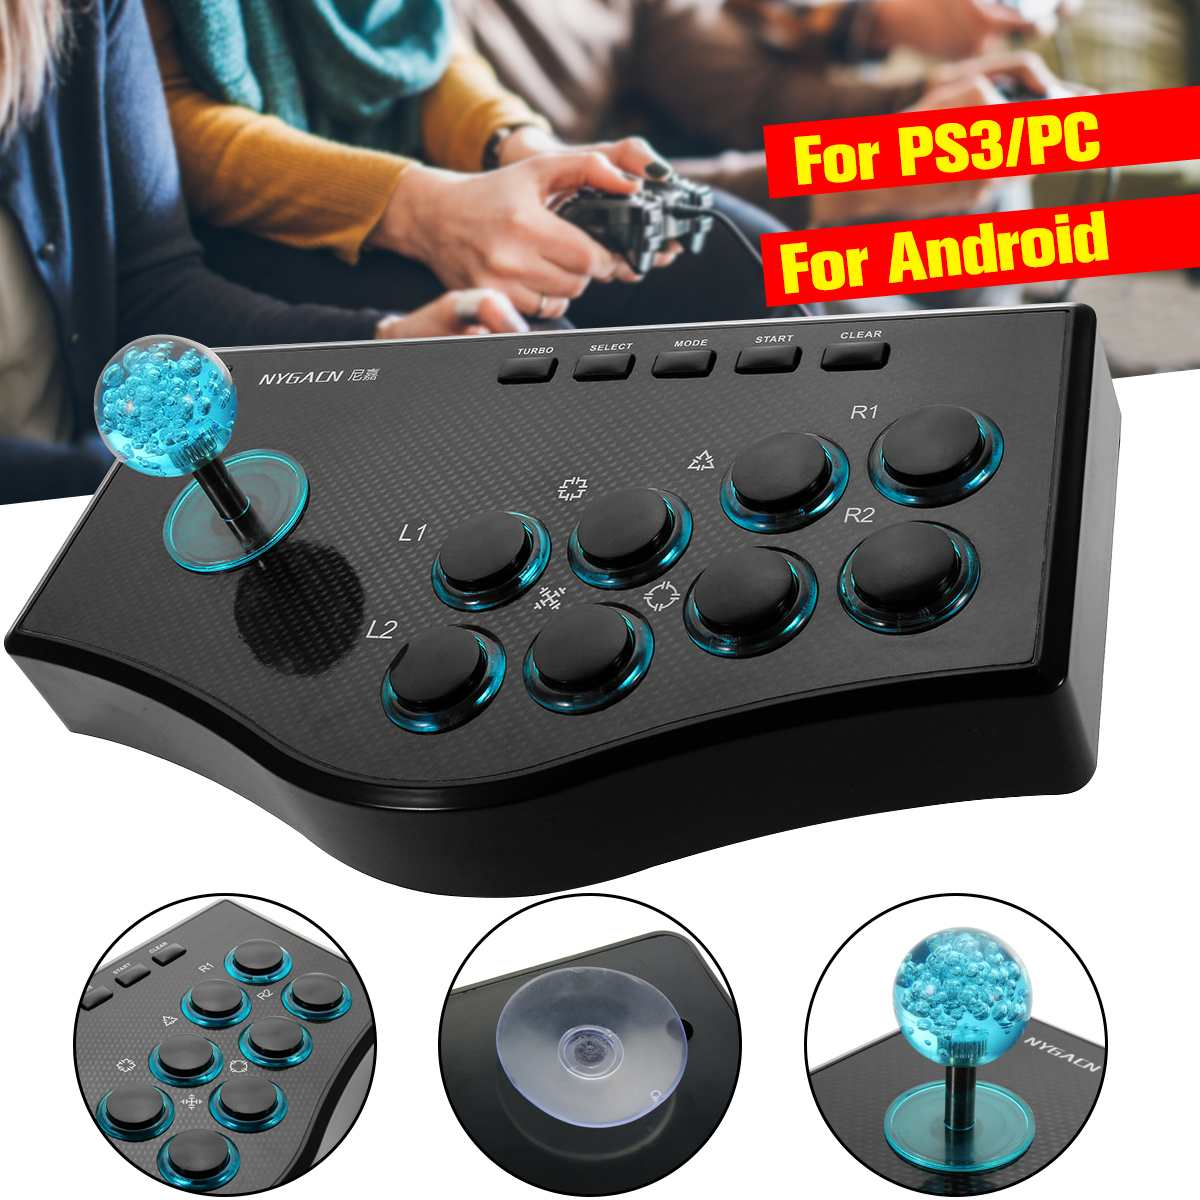 USB Rocker Game Controller Arcade Joystick Gamepad Fighting Stick For PS3/PC For Android Plug And Play Street Fighting Feeling image